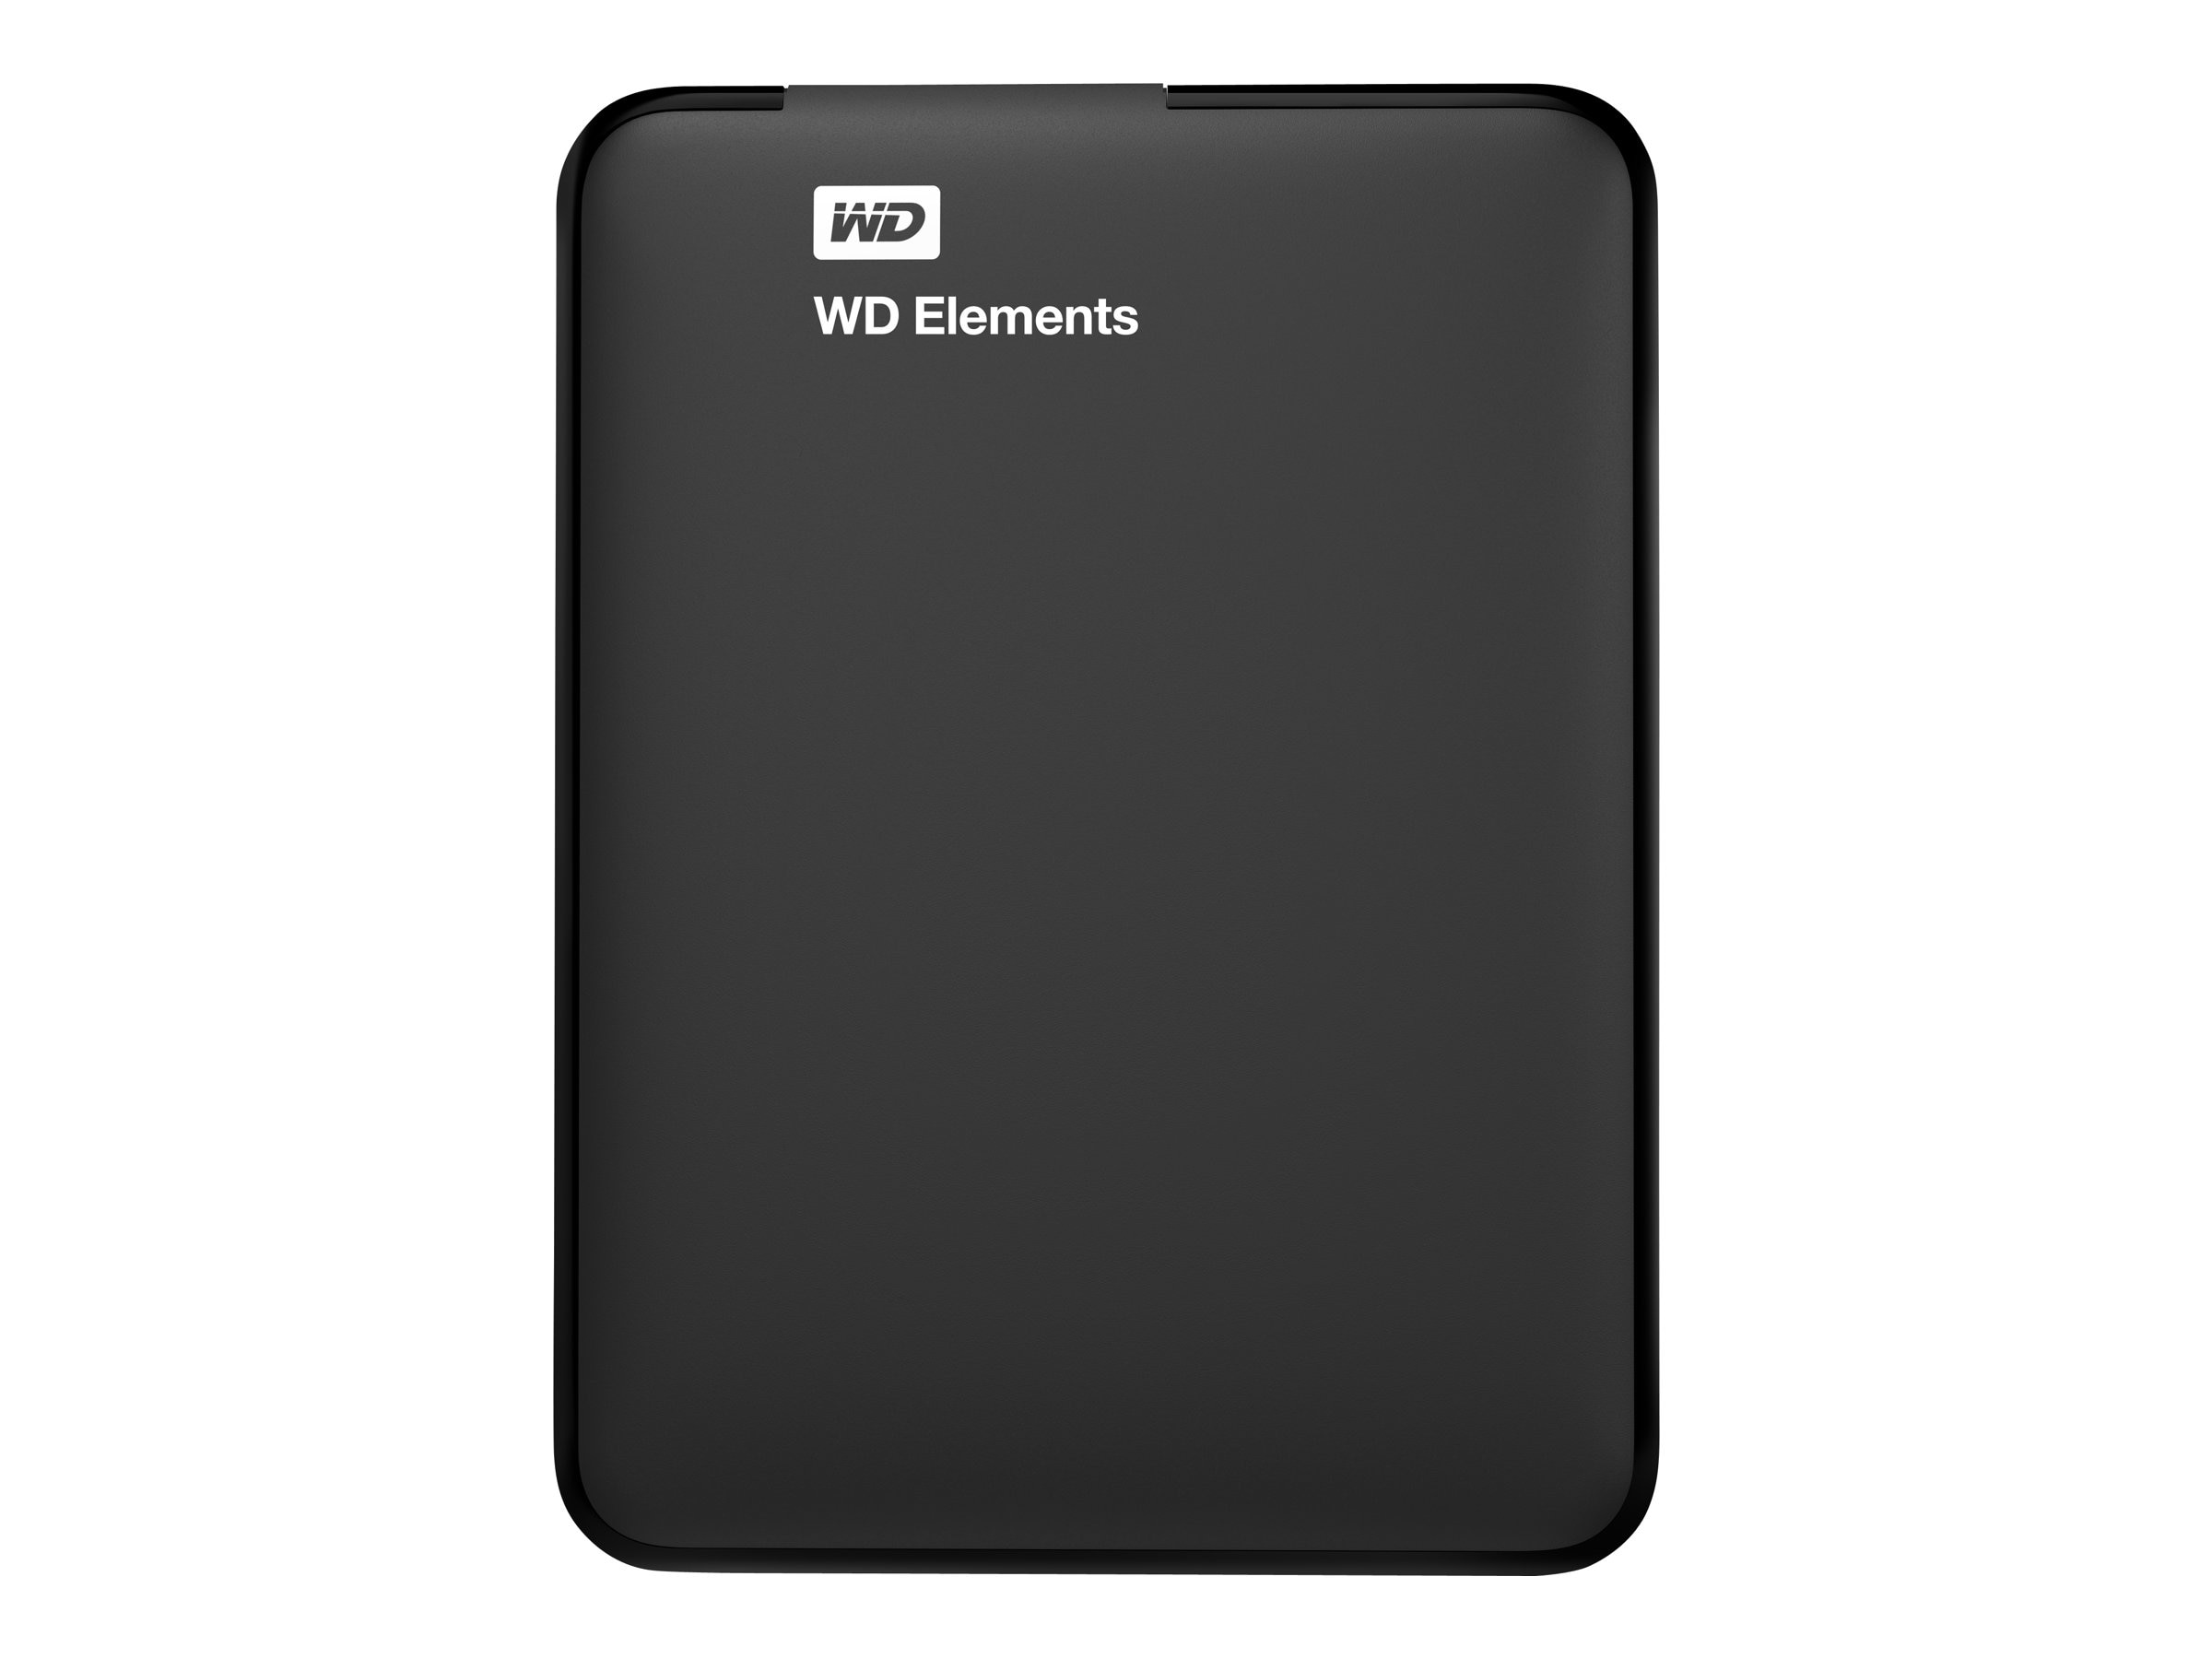 WD 1TB Elements USB 3.0 Portable Hard Drive, WDBUZG0010BBK-NESN, 15972591, Hard Drives - External